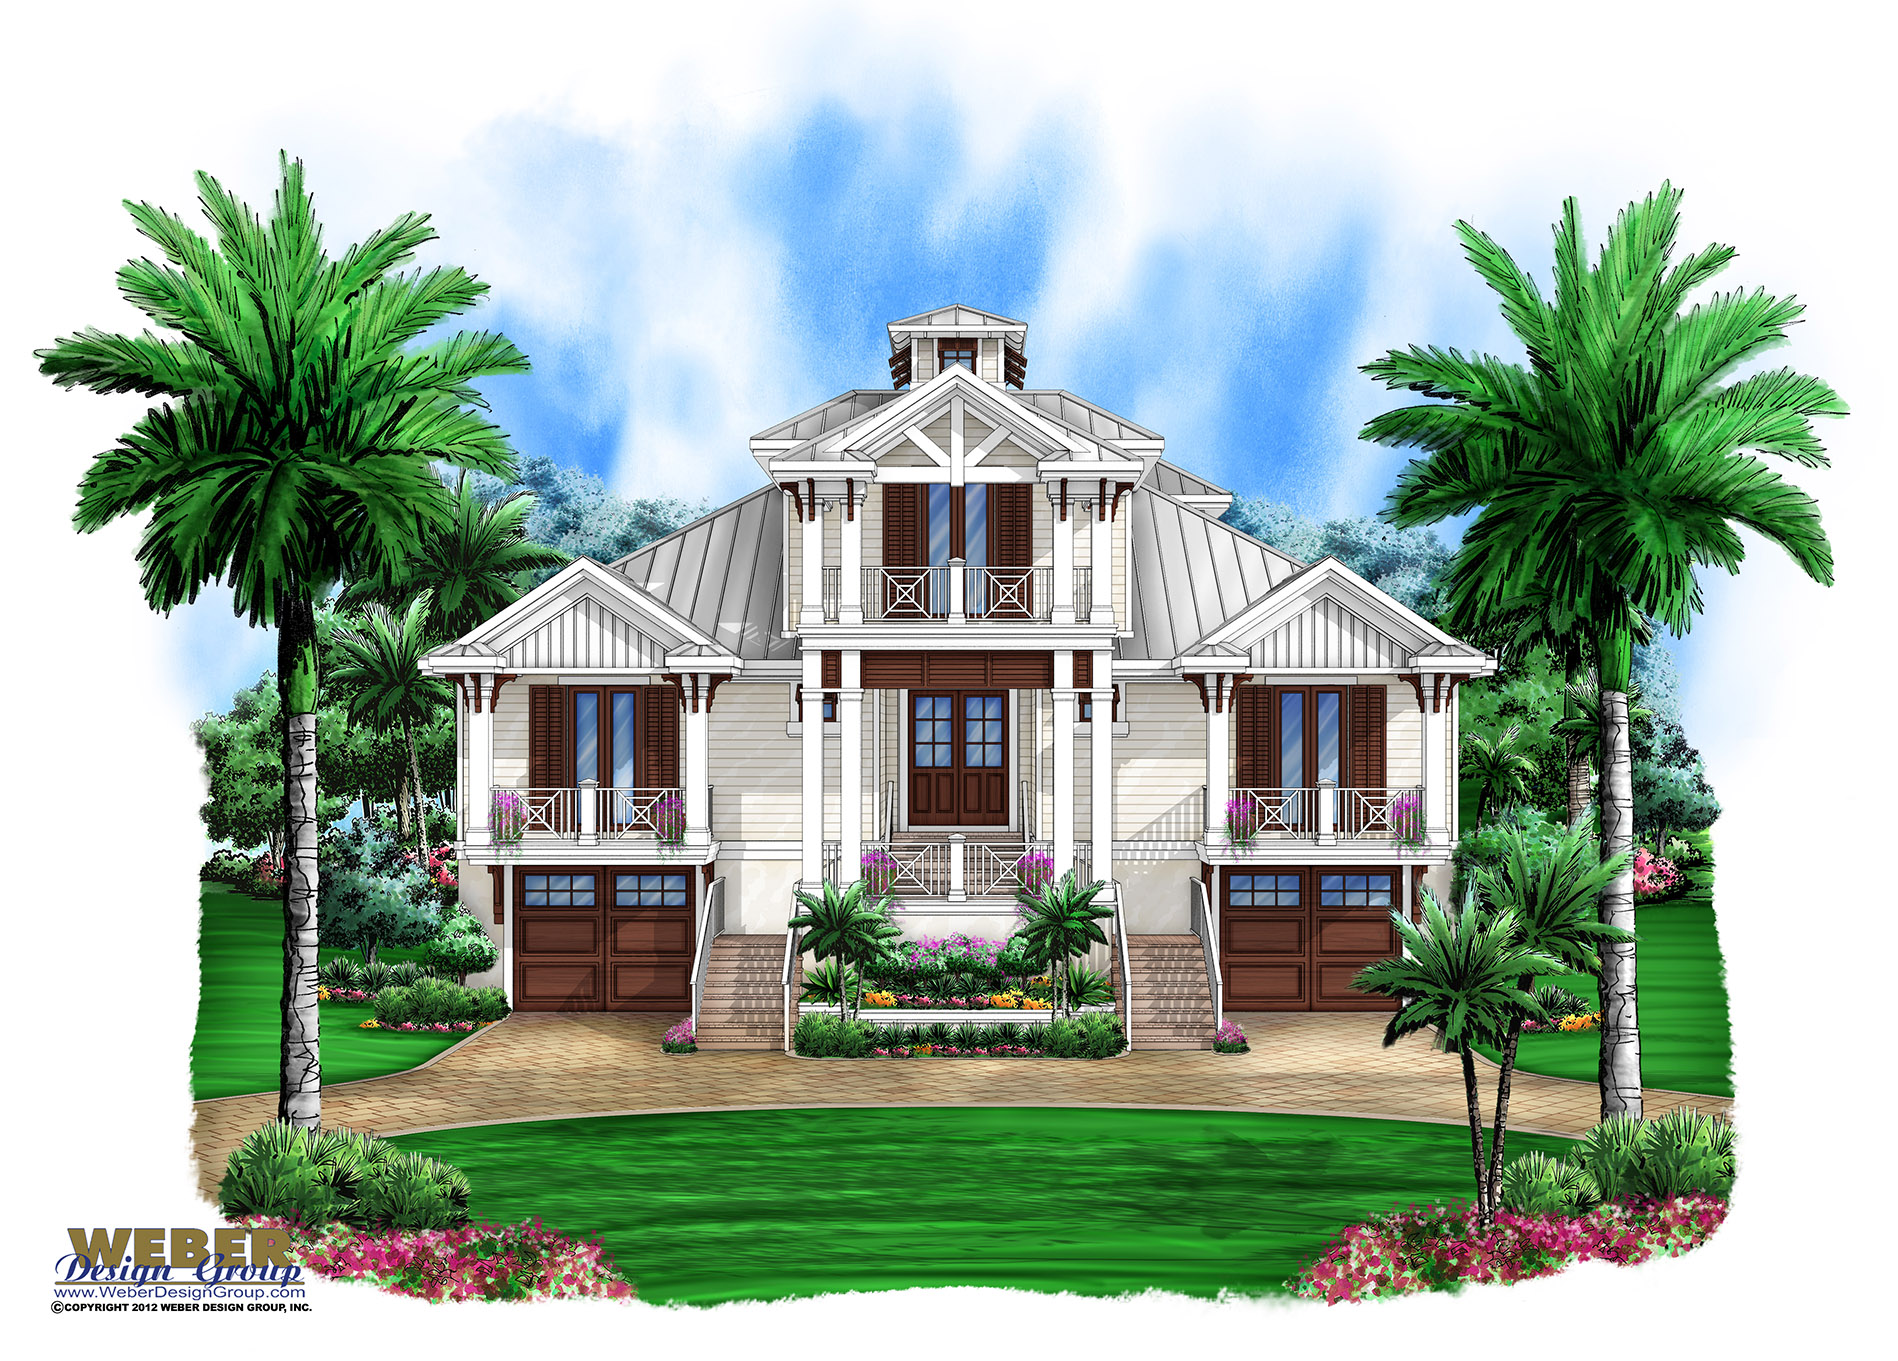 Marsh harbour olde florida house plan weber design group for Coastal house floor plans